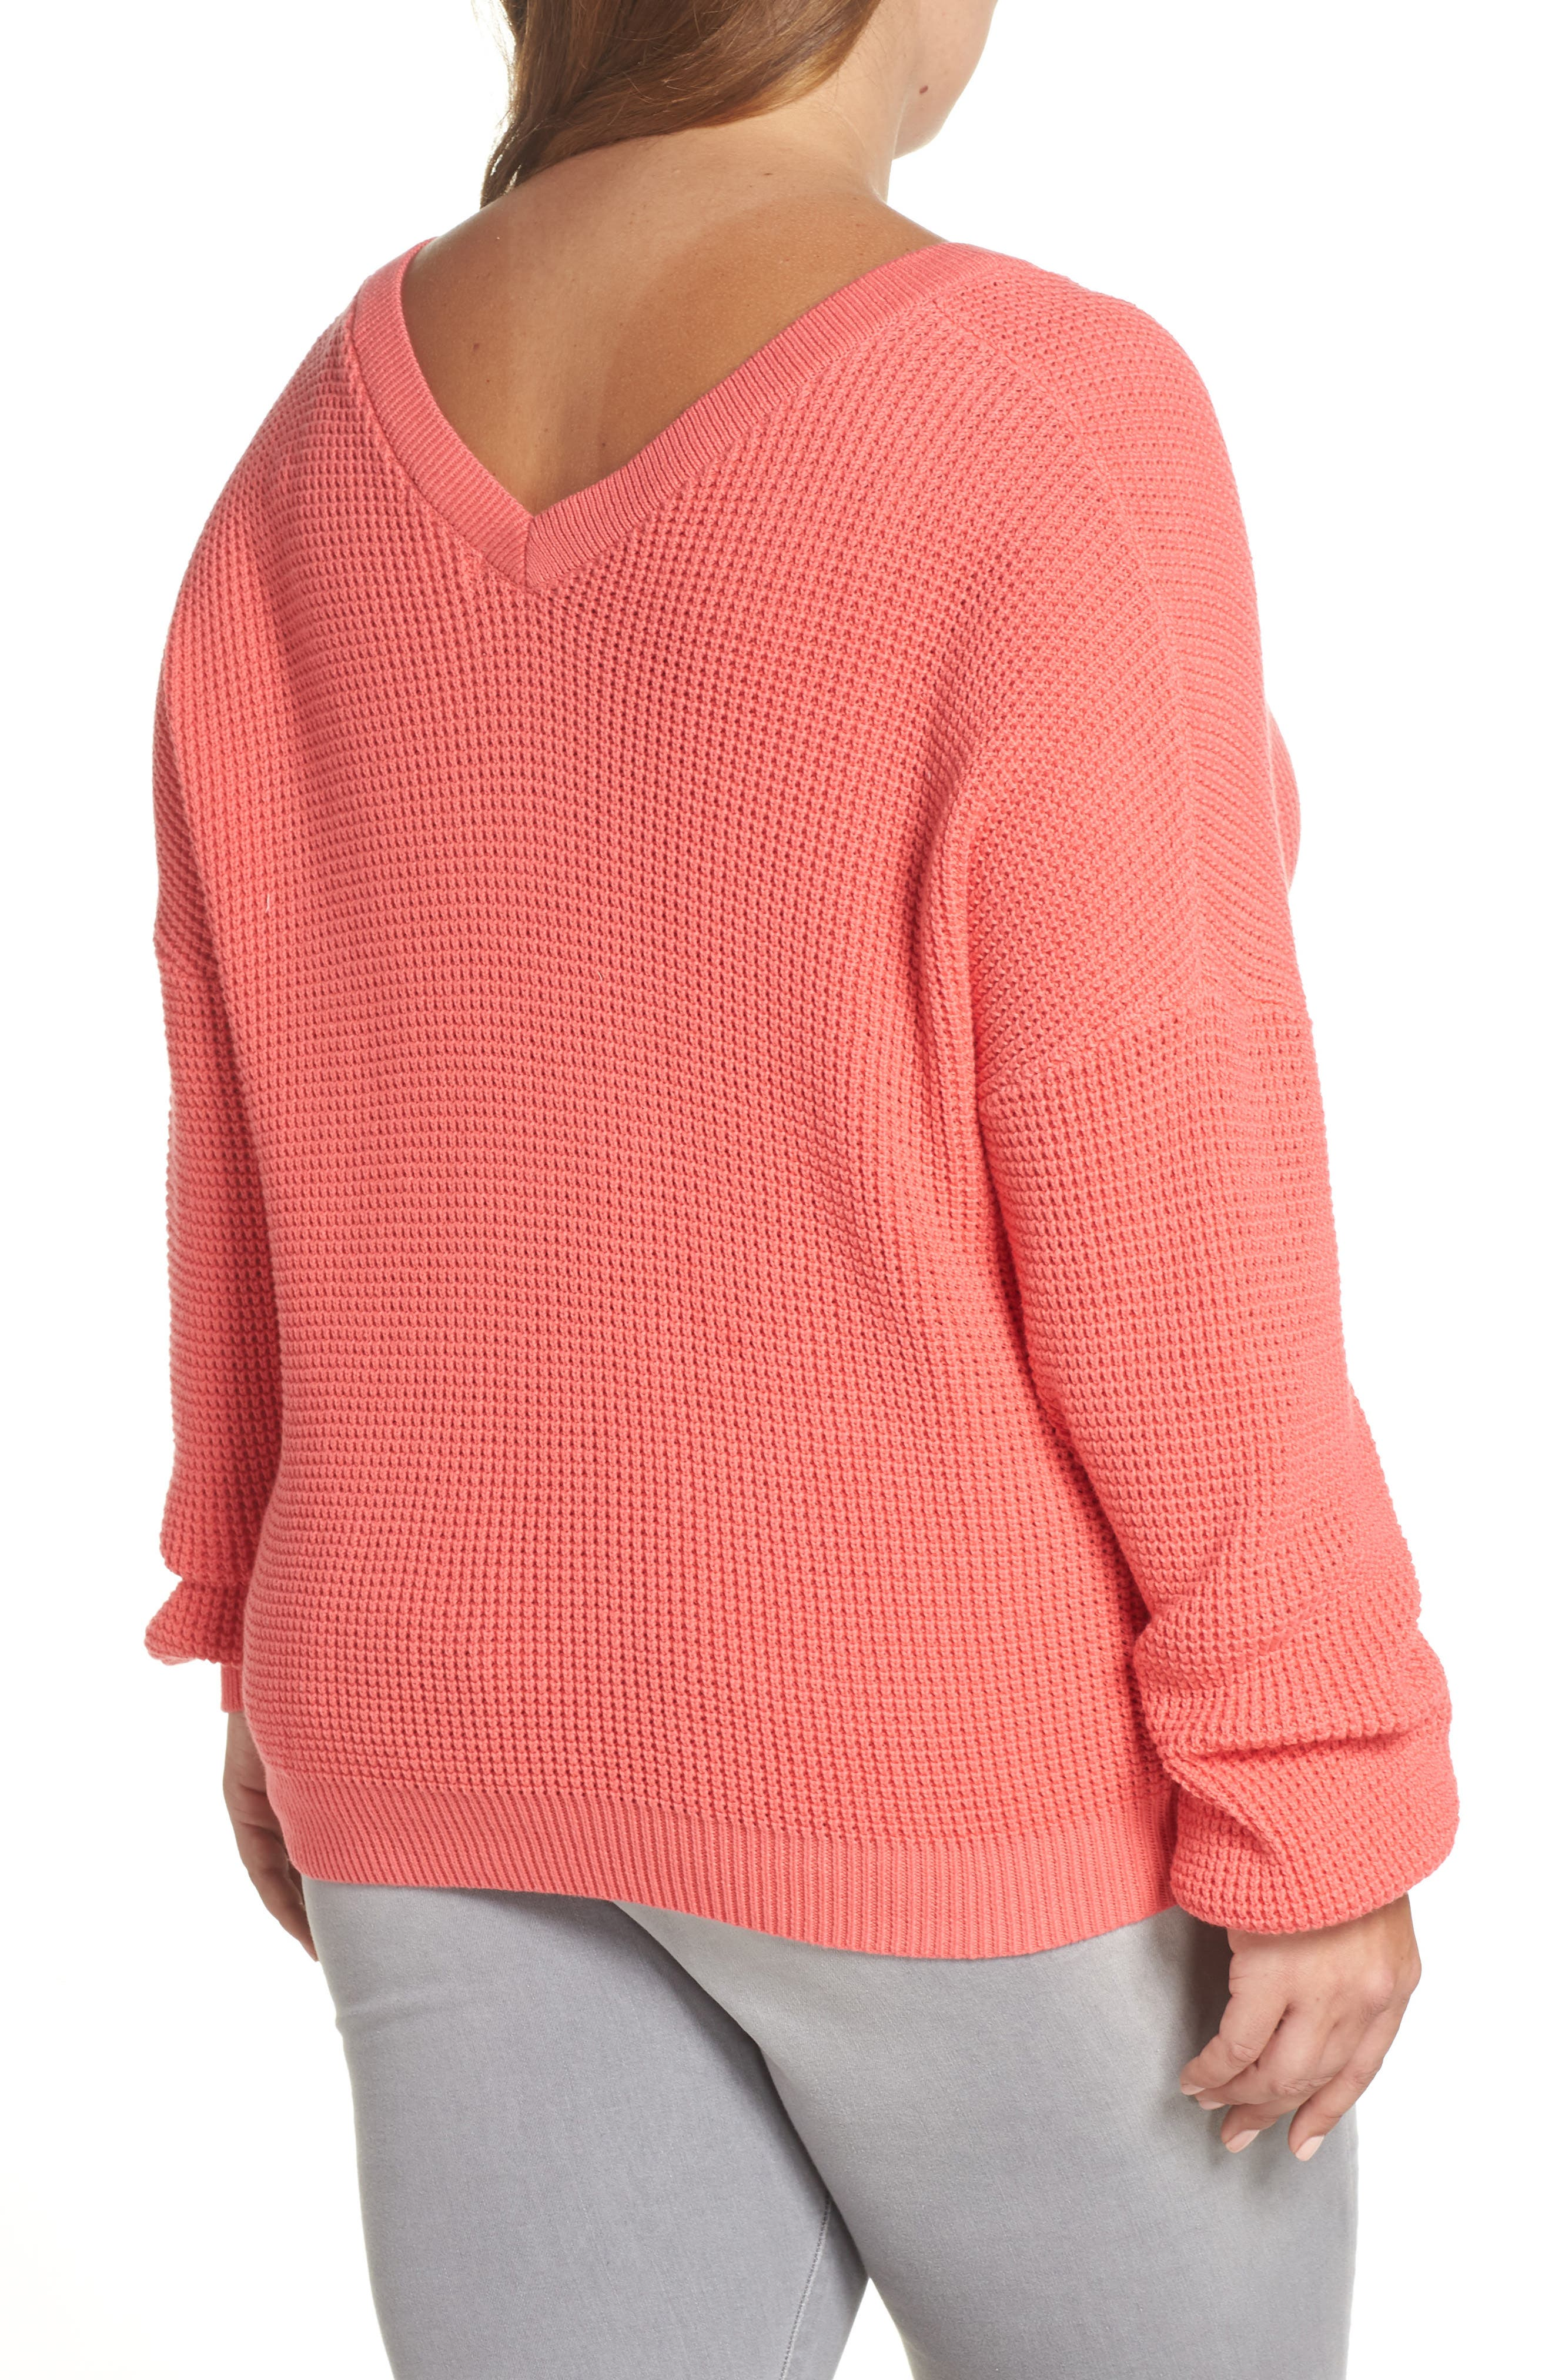 Twist Front Sweater,                             Alternate thumbnail 8, color,                             CORAL SUNKIST